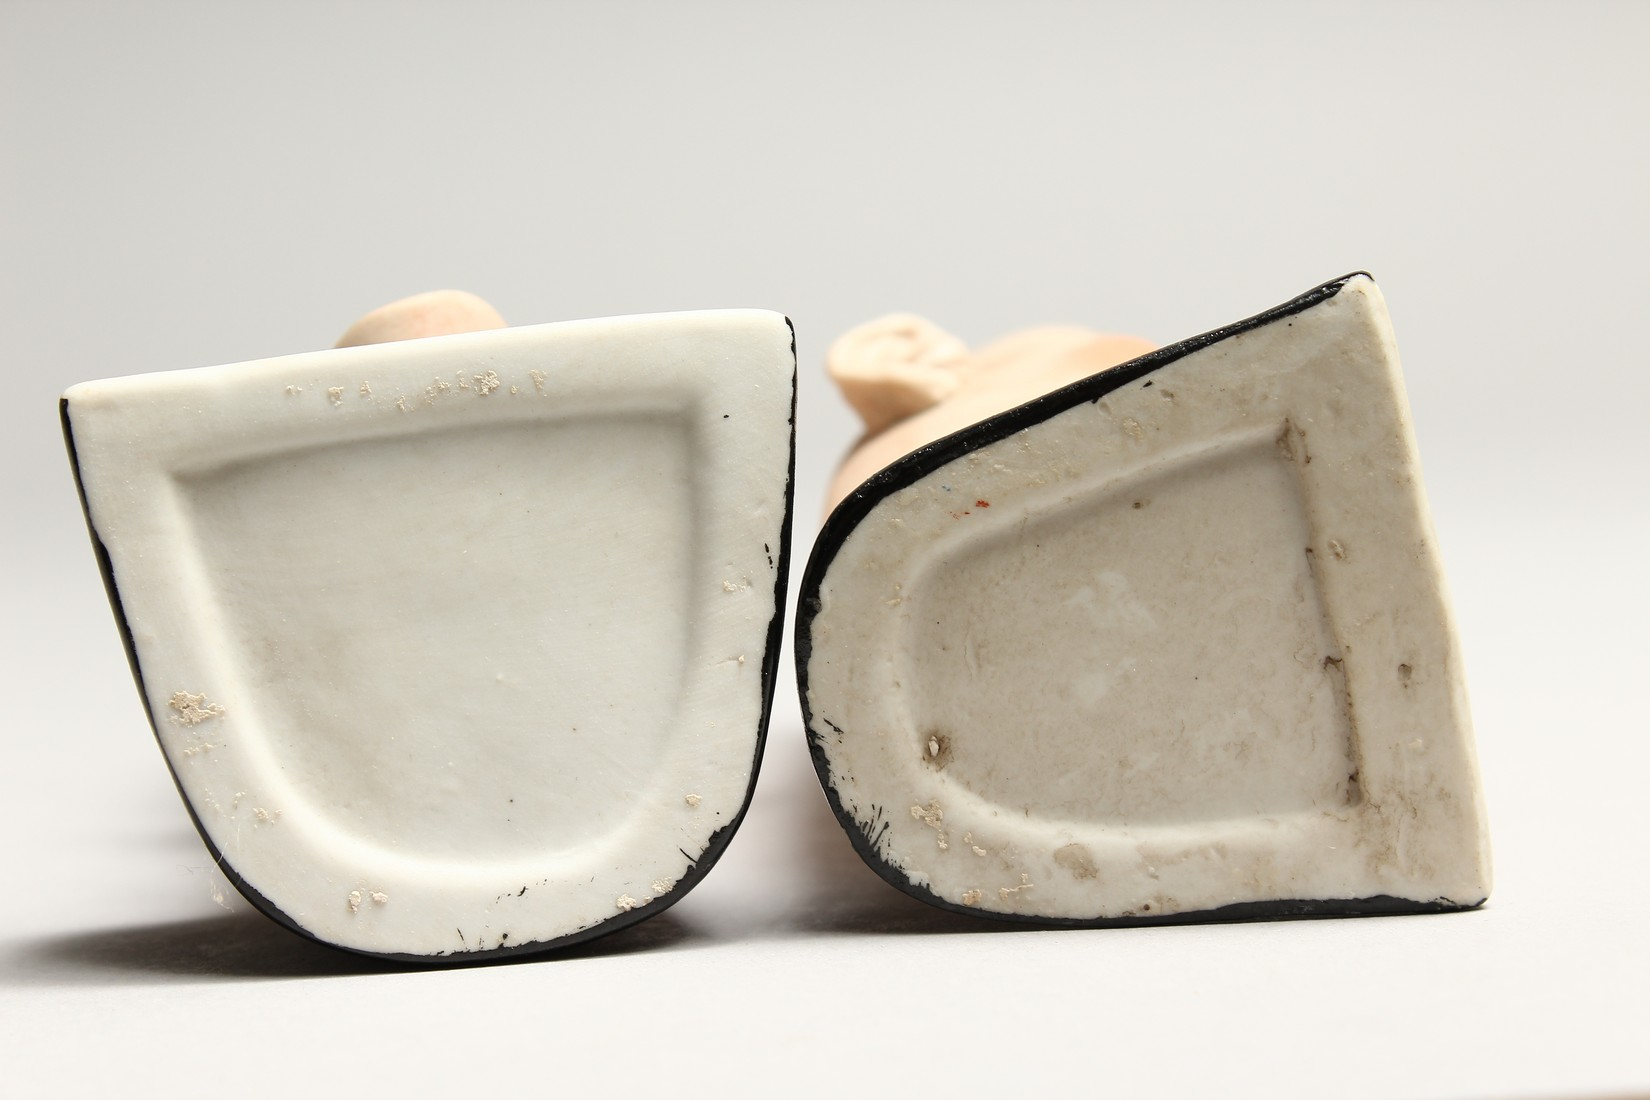 A PAIR OF POTTERY MEN'S HEADS ASHTRAYS. 5in high. - Image 5 of 5